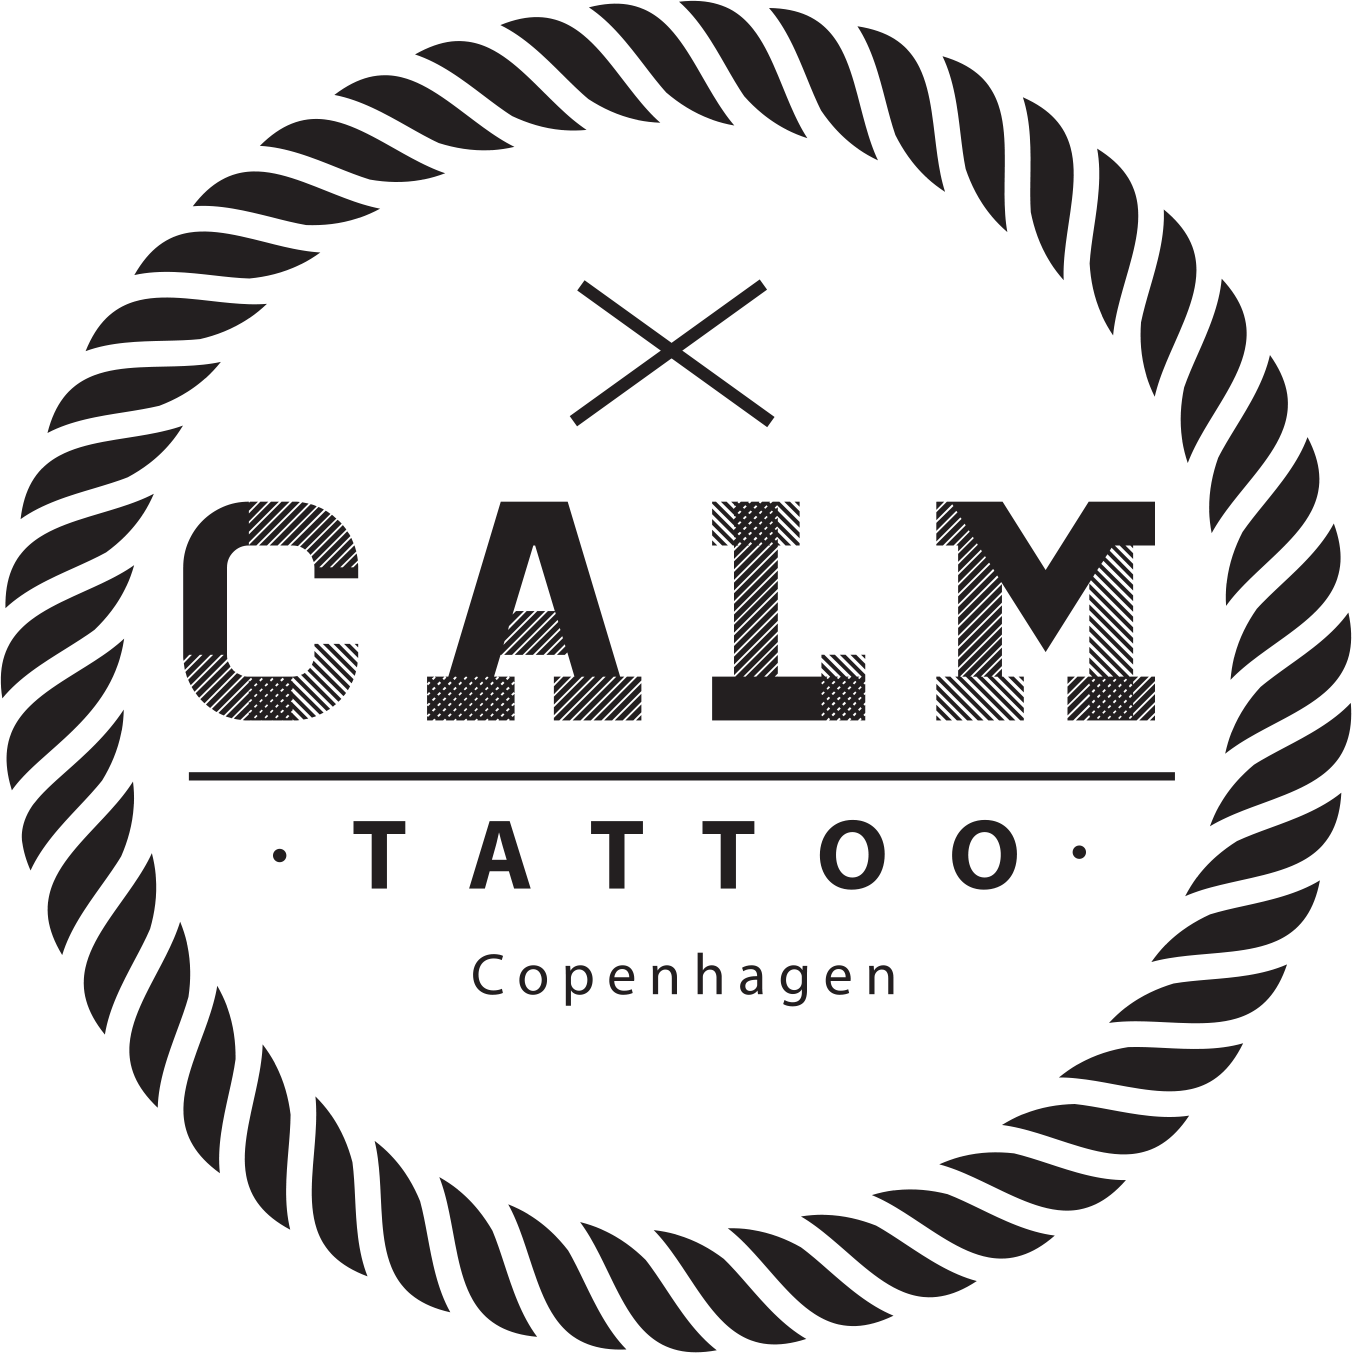 CALM Tattoo